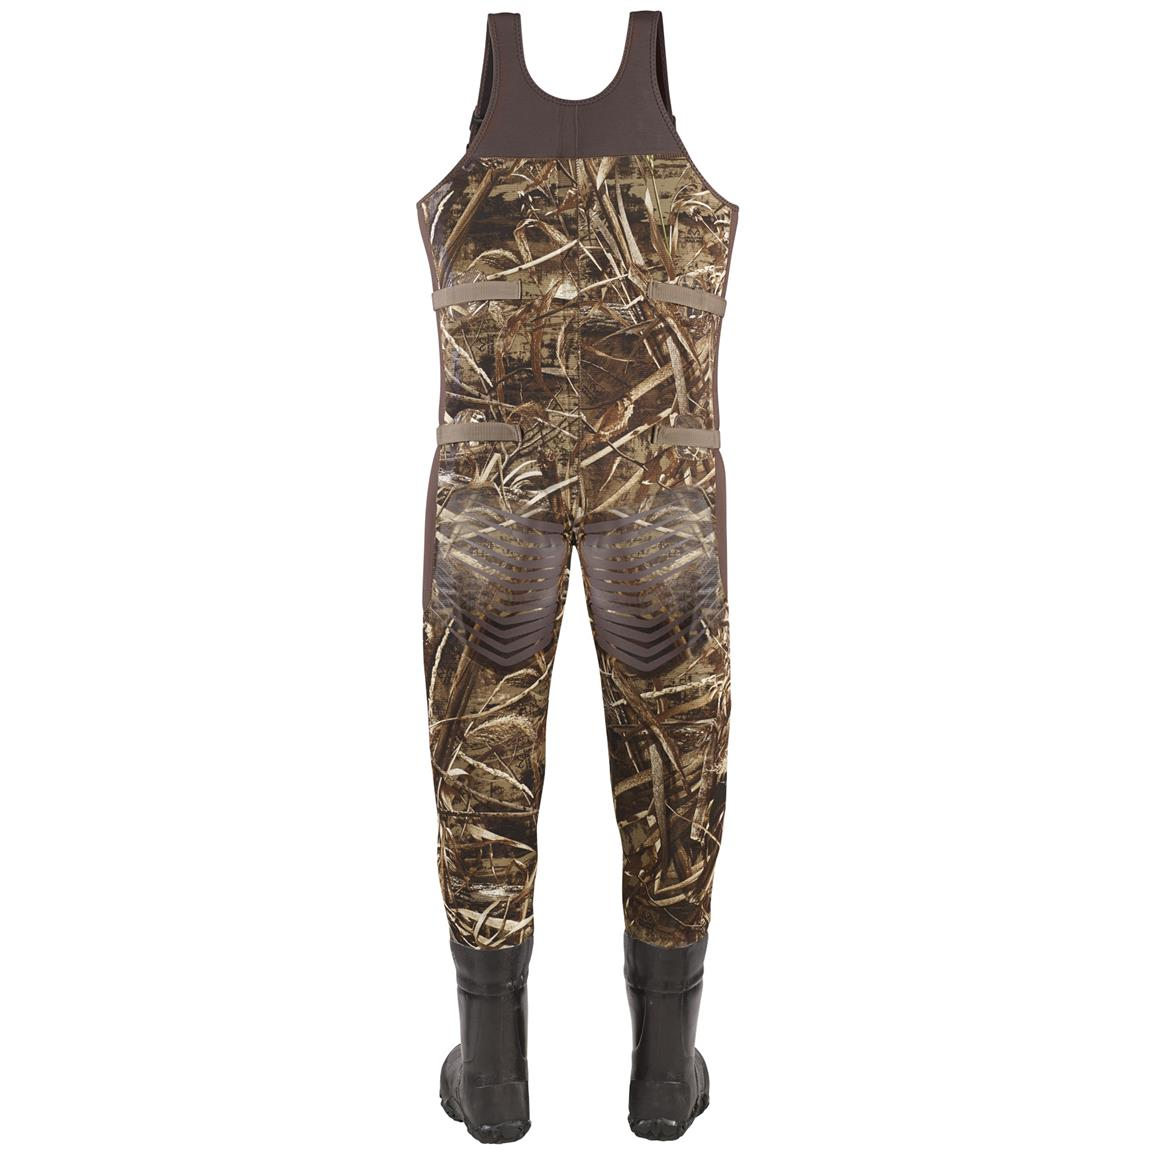 Men's Lacrosse 1,000 Gram Thinsulate Ultra Mallard II Expandable Waders, Realtree MAX-5® Camo - Back view